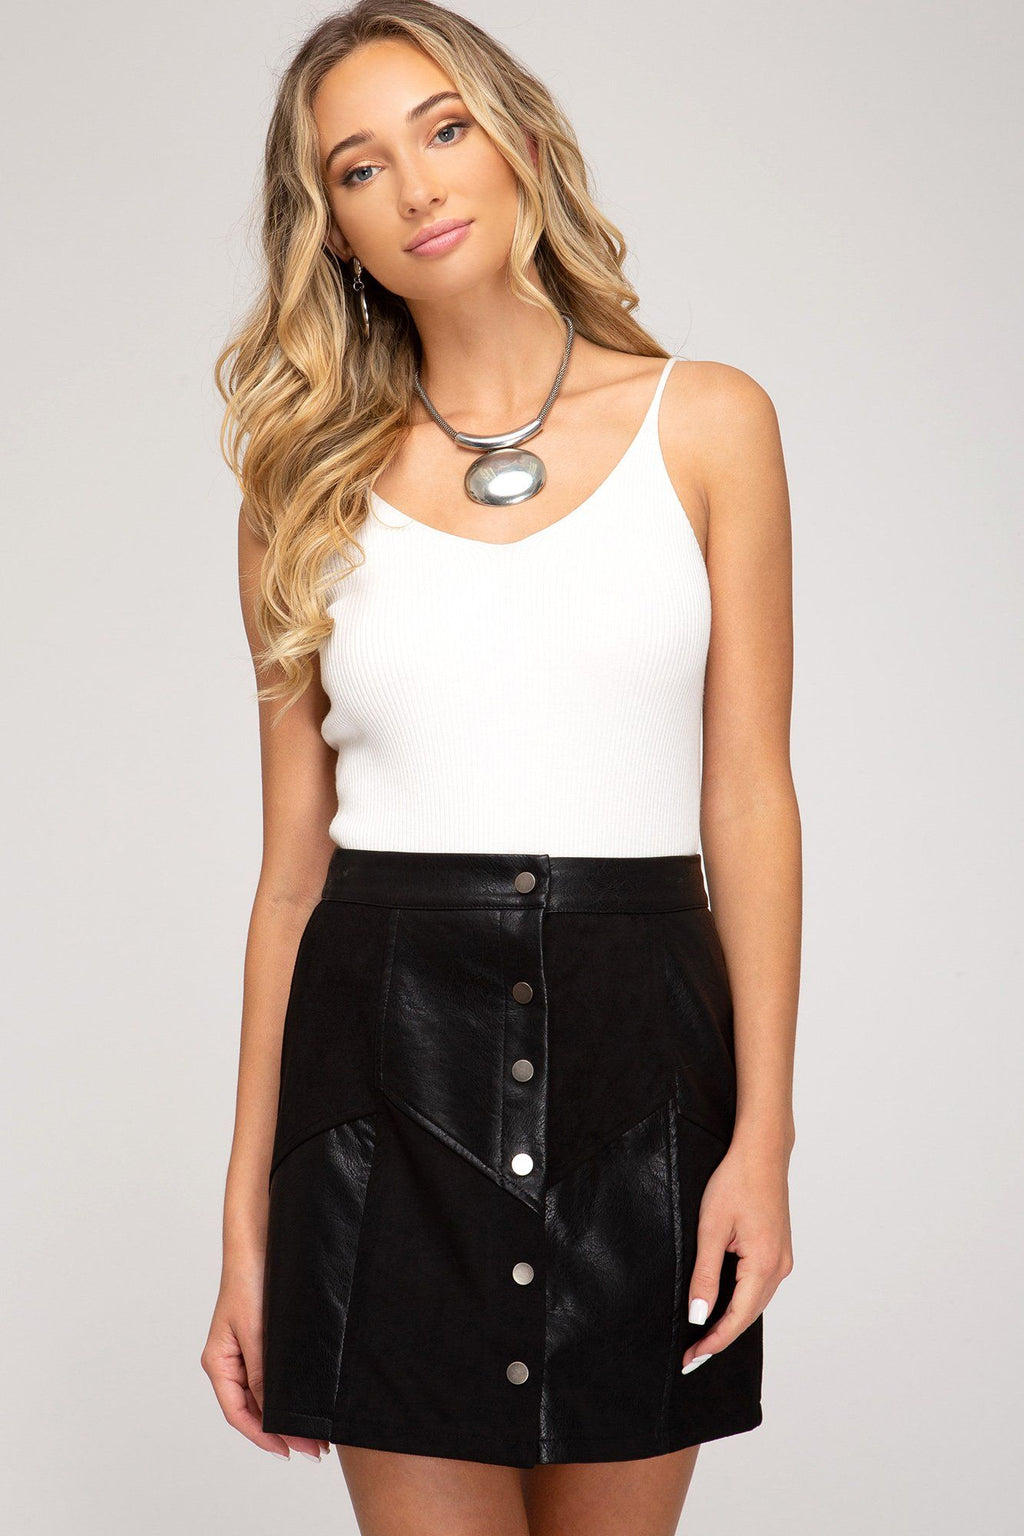 80's Revival Faux Leather & Suede Mix Mini Skirt - Caroline Hill